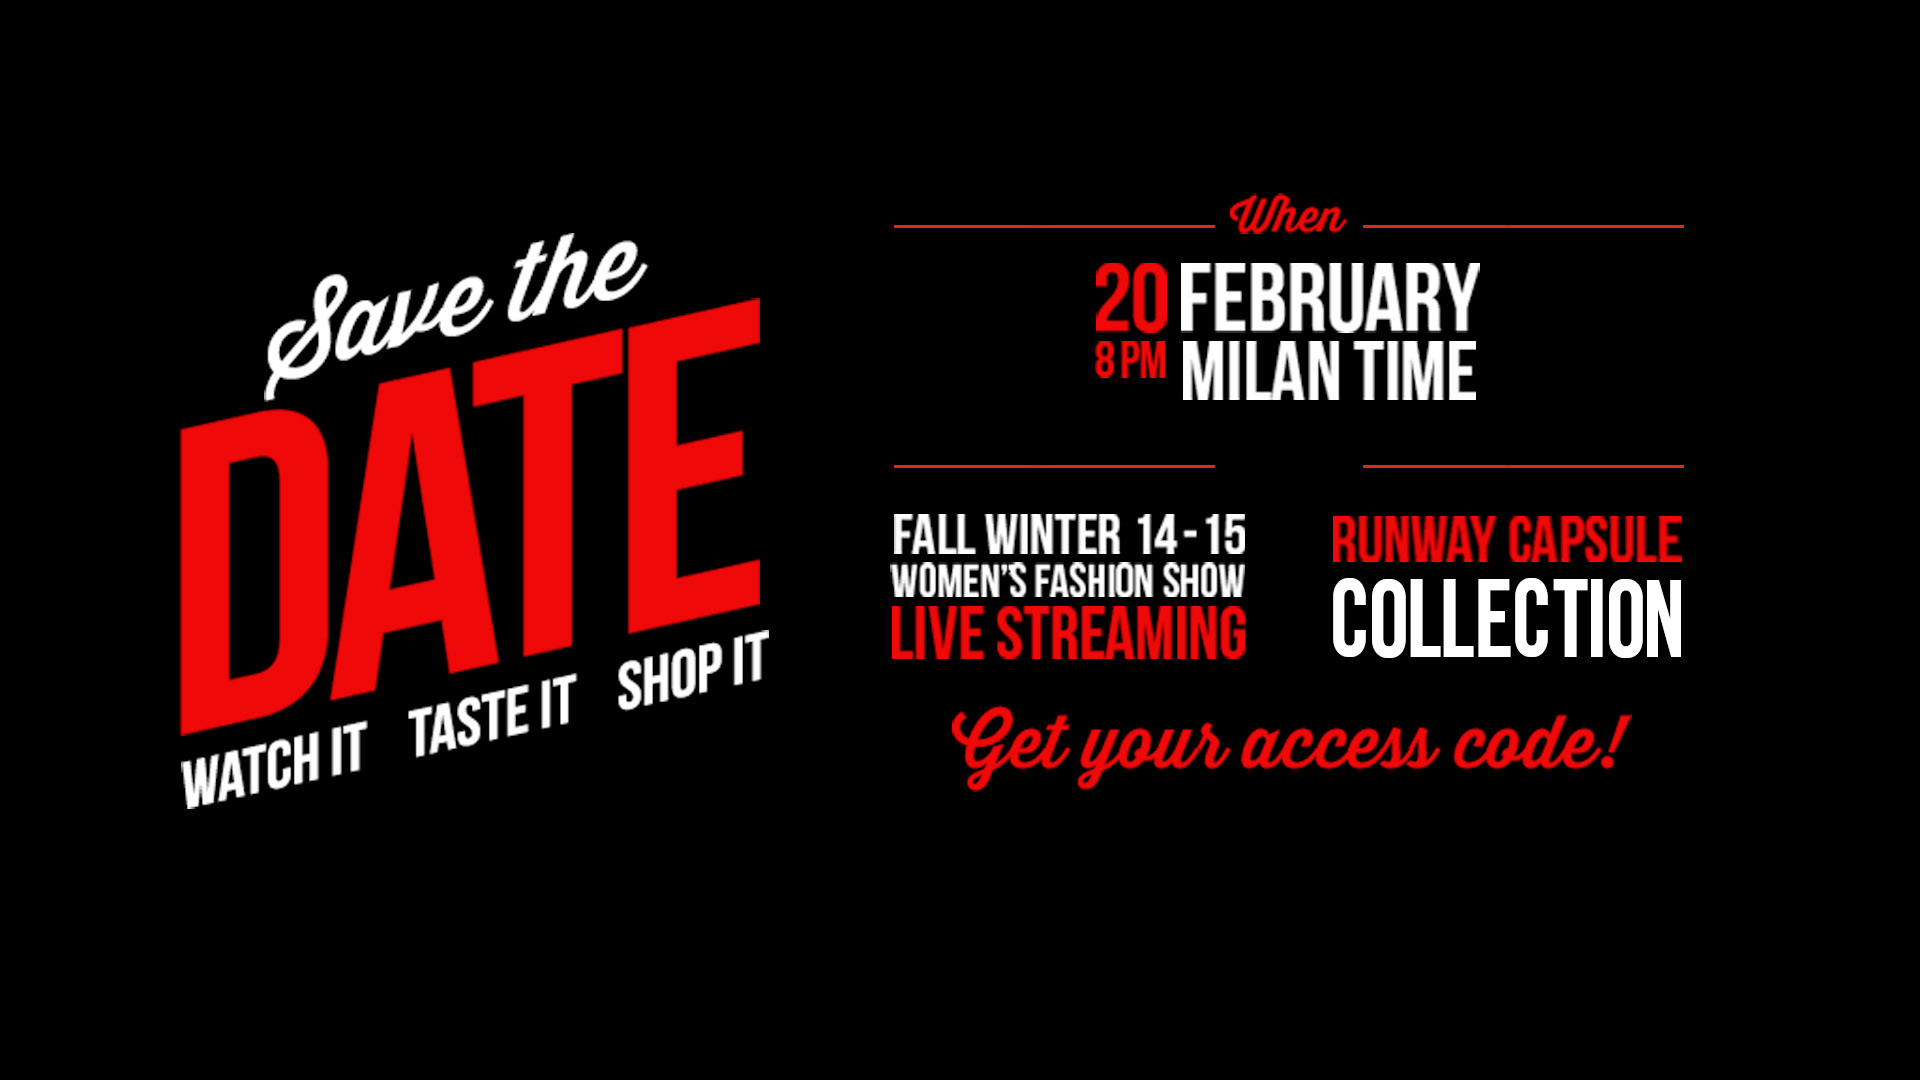 Moschino Fall Winter 2014-15 Fashion Show Live Streaming - 20th February 8pm Milan